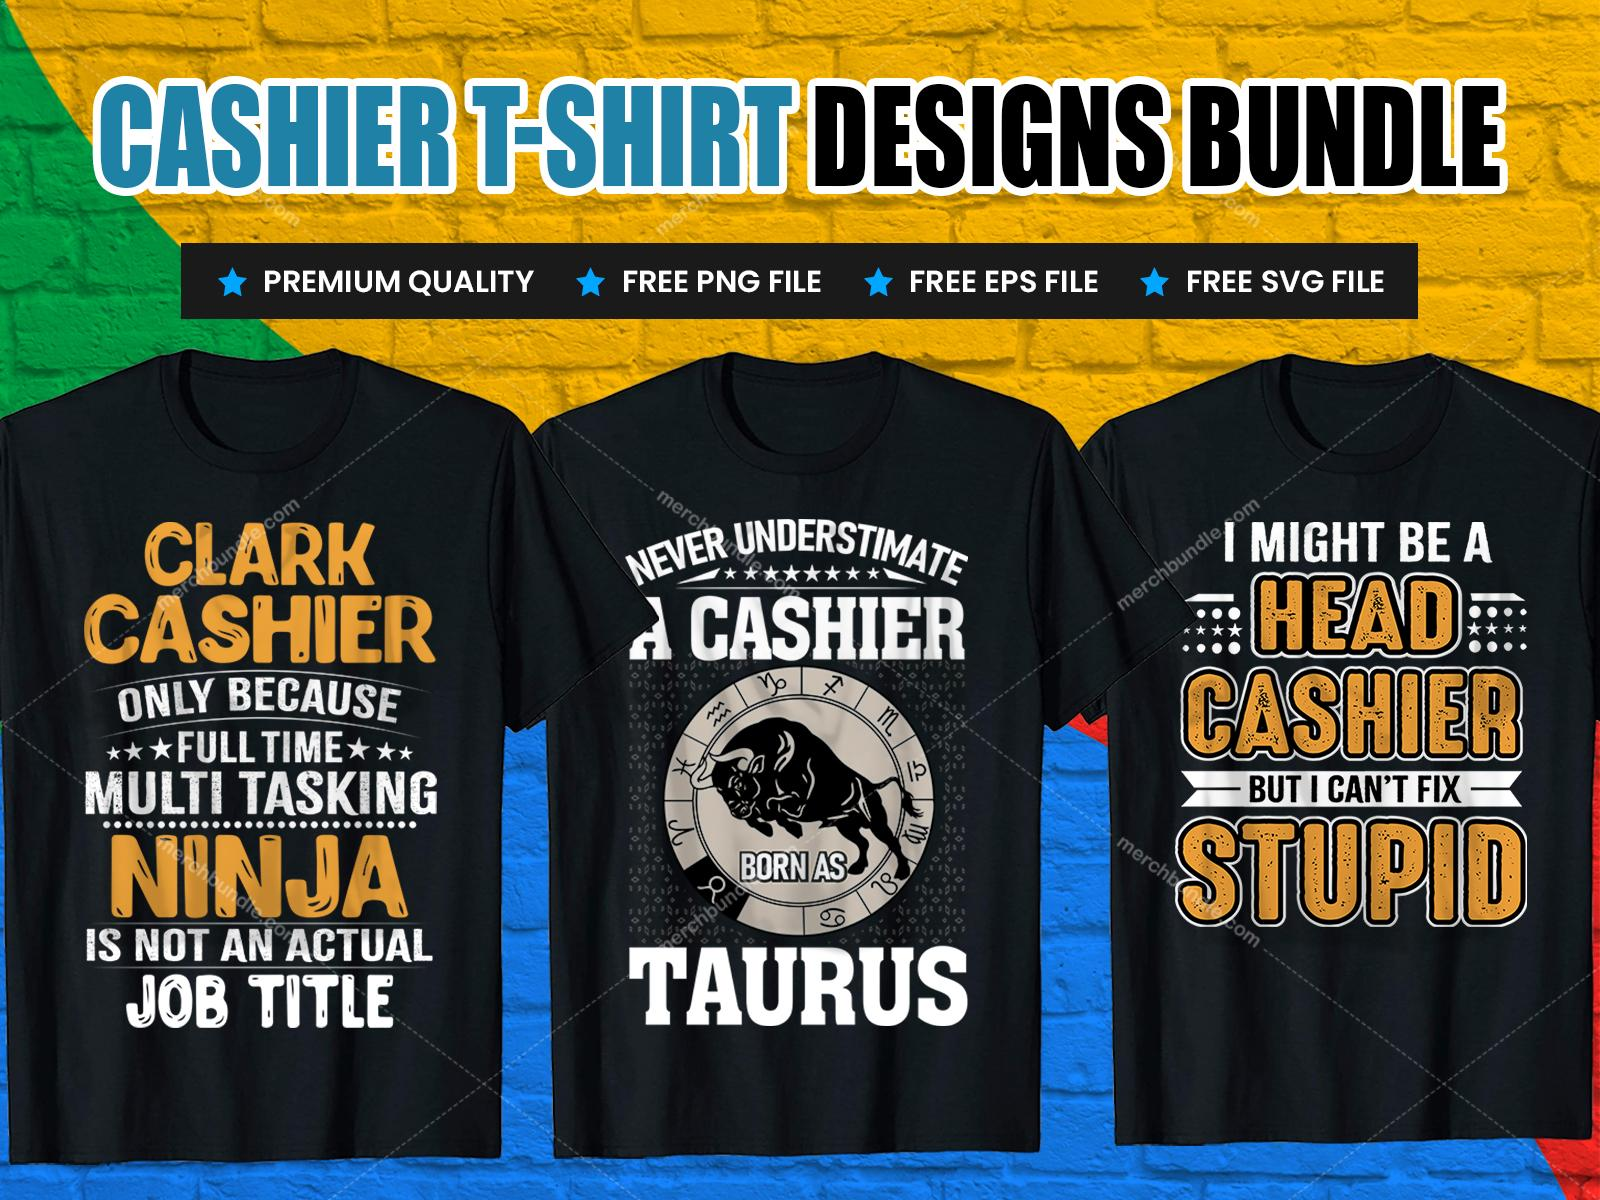 Cashier t shirt design